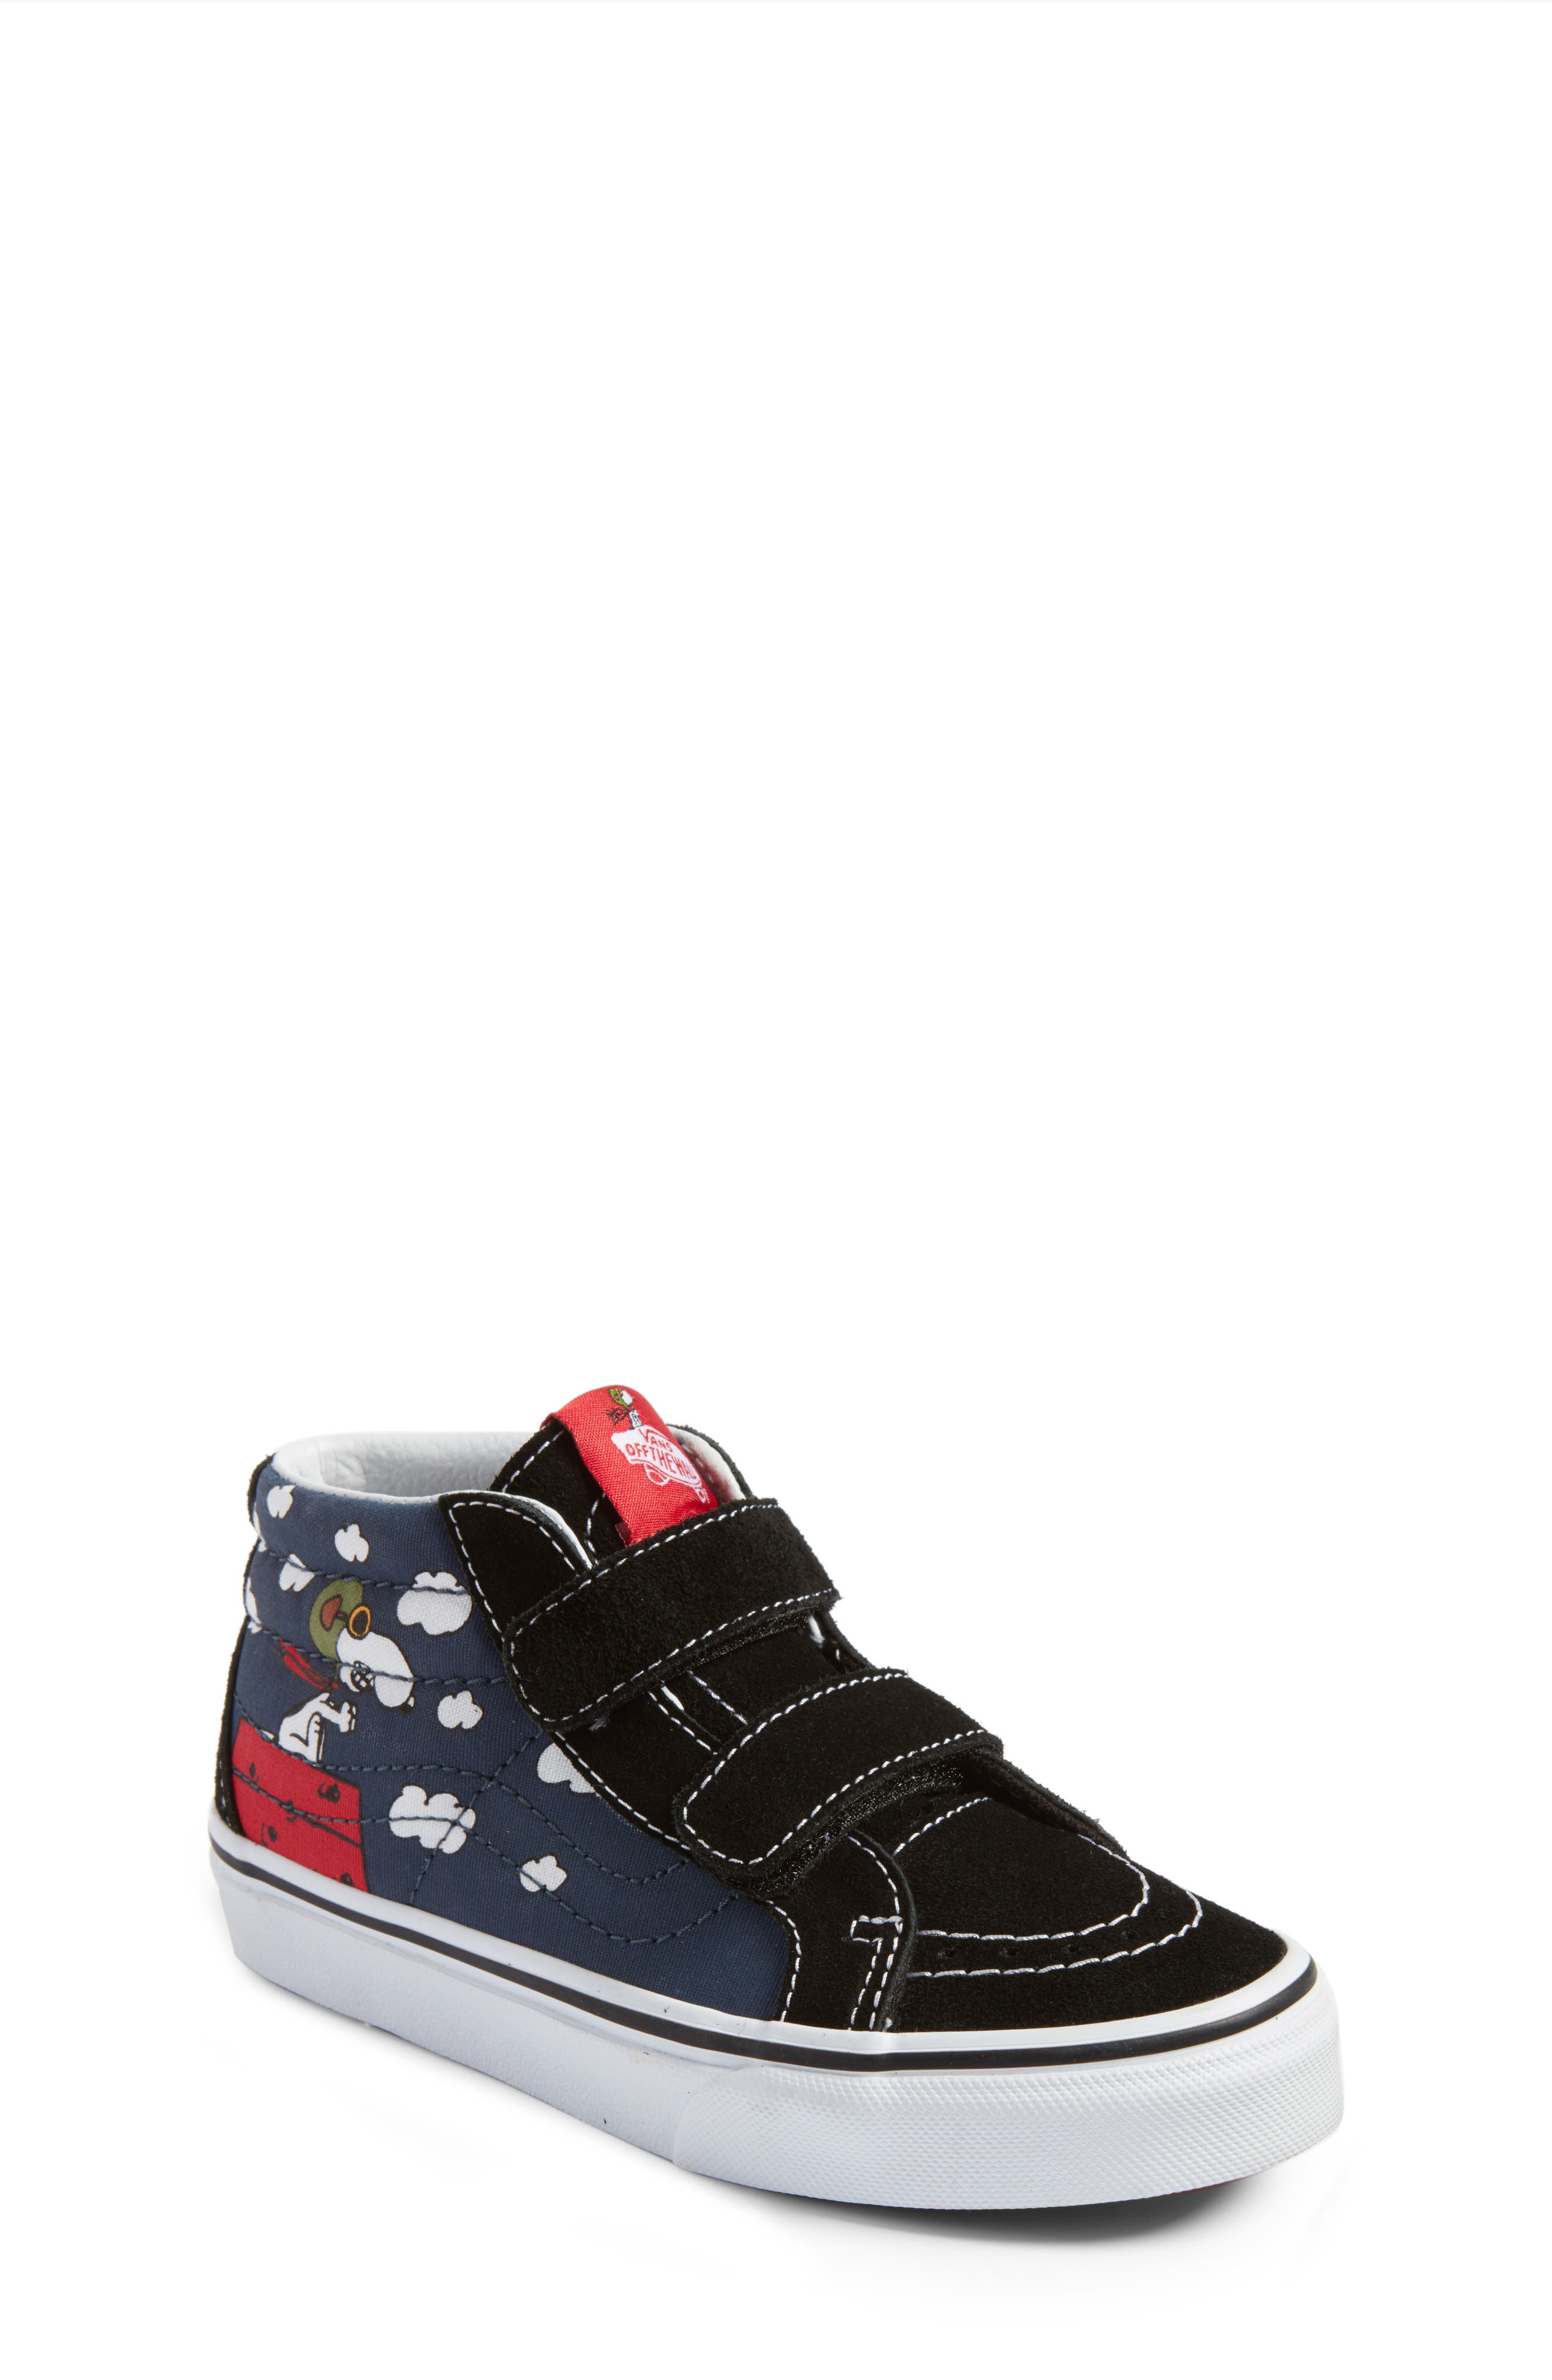 x Peanuts SK8-Mid Reissue V Sneaker,                             Main thumbnail 1, color,                             Flying Ace/ Blue Canvas